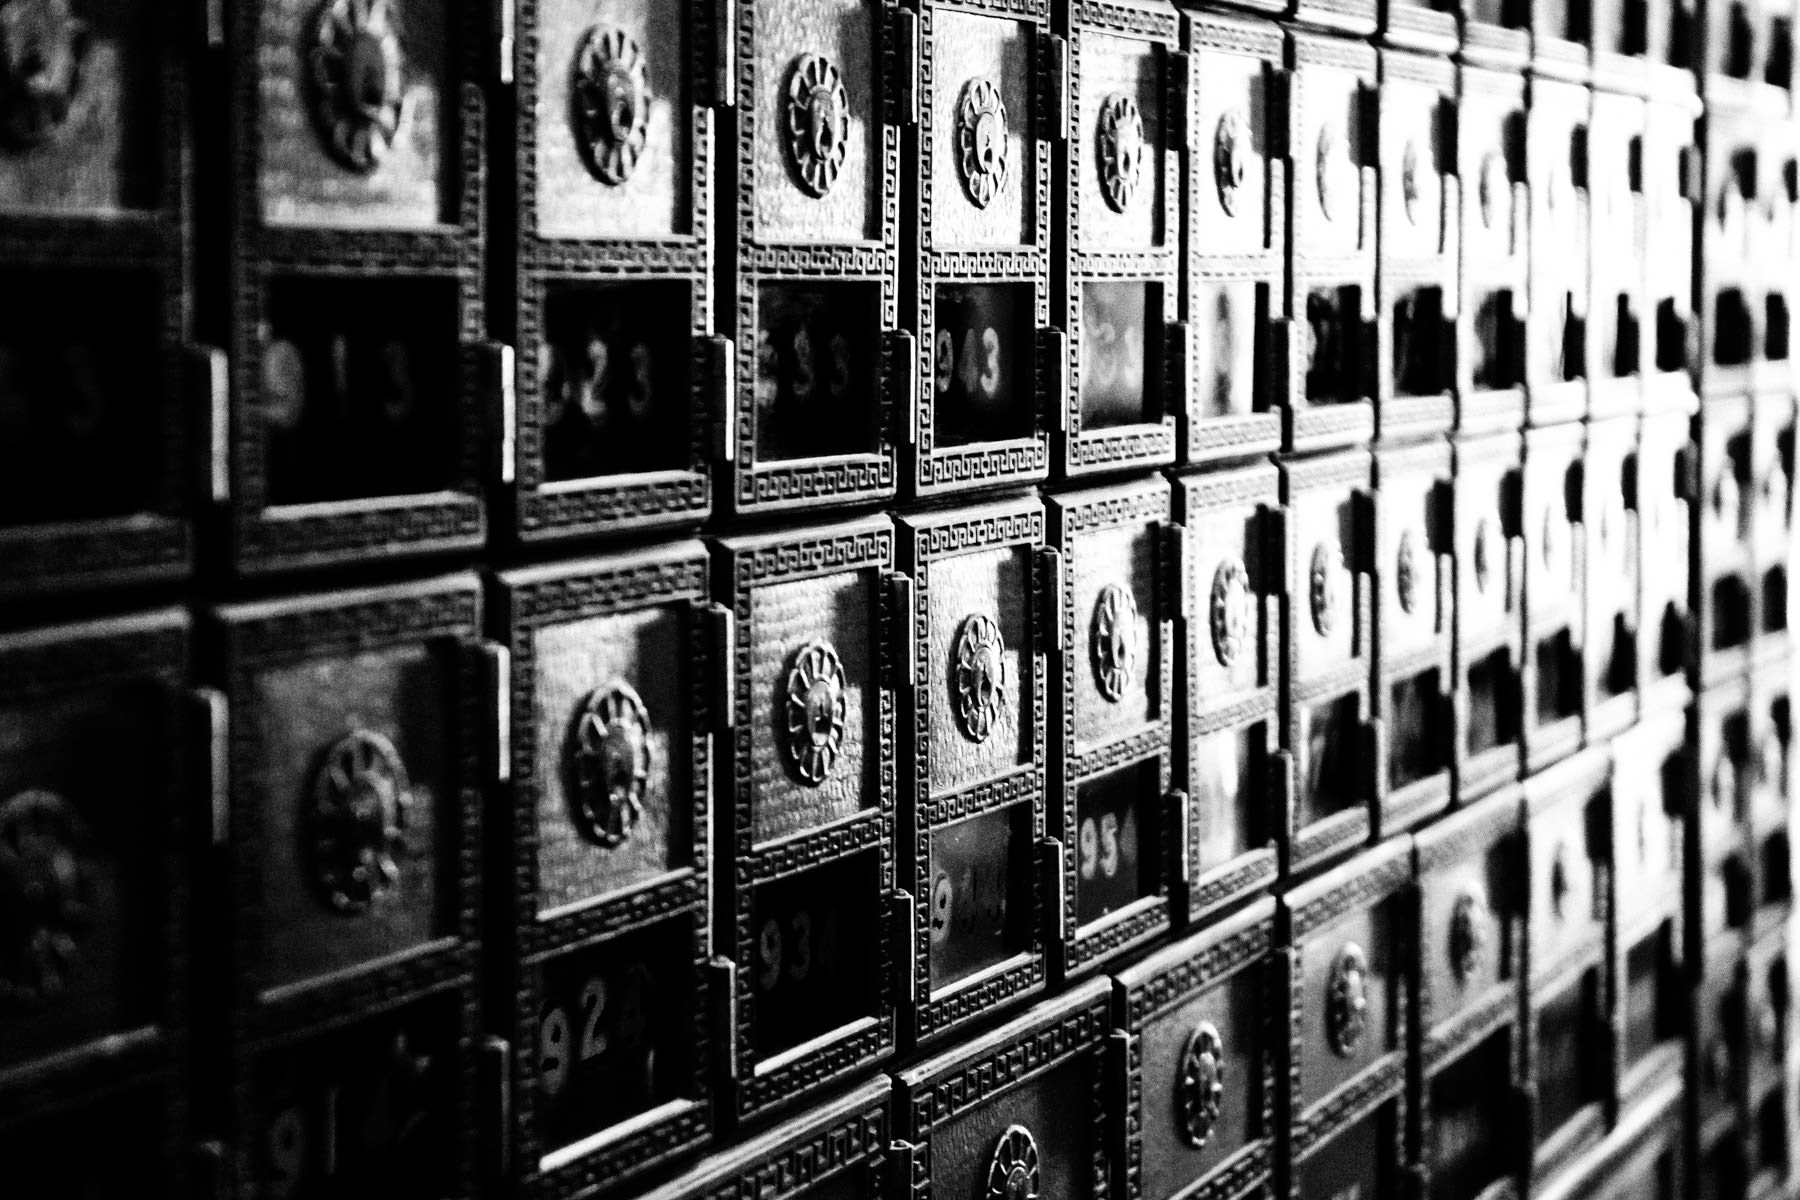 Post office boxes at Fort Worth, Texas' main post office.